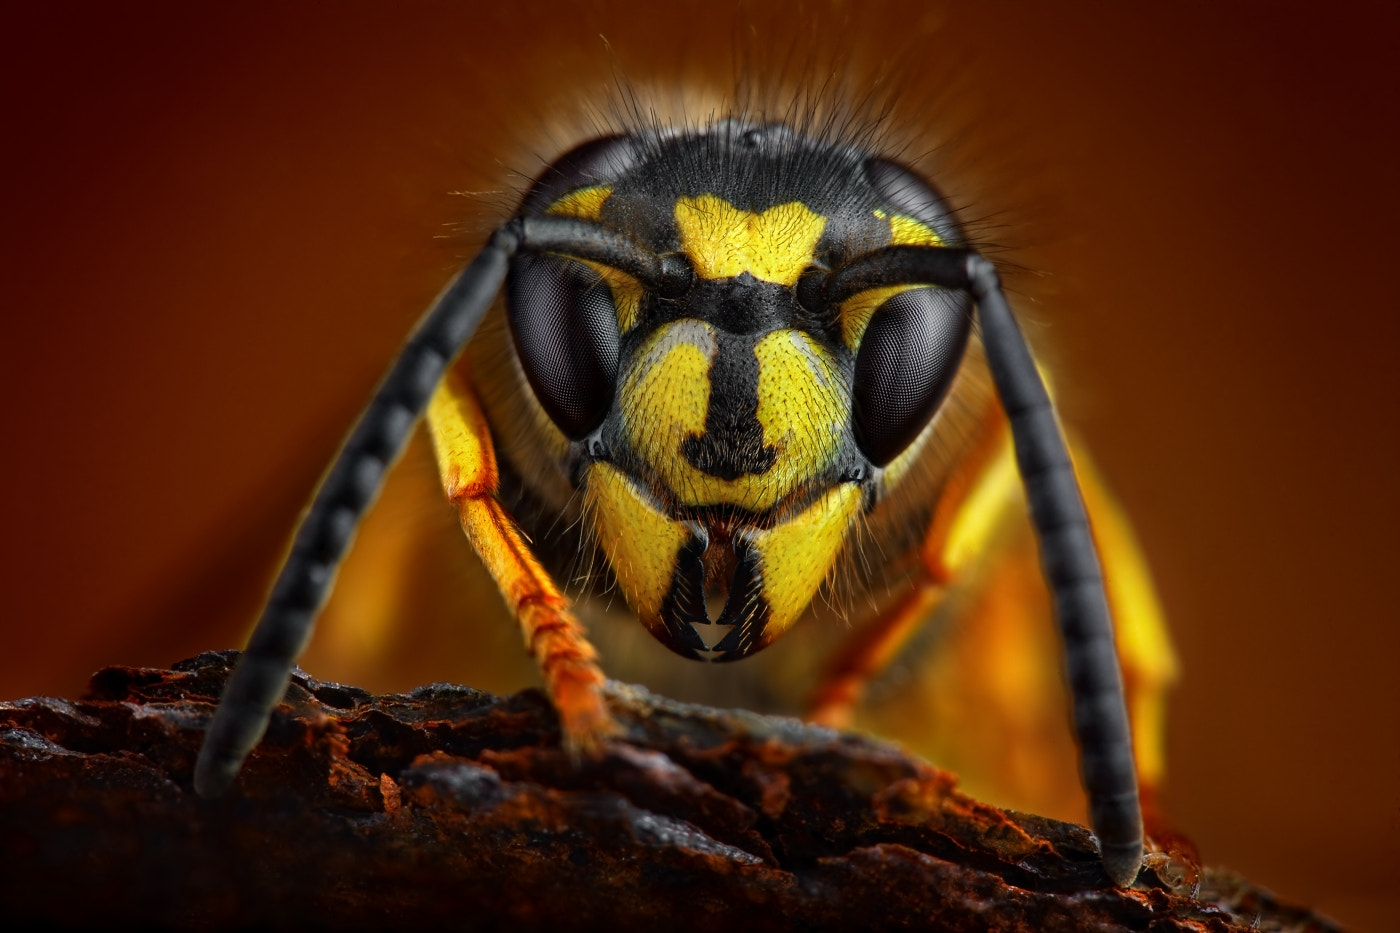 Photograph Wasp by Tomas Rak on 500px